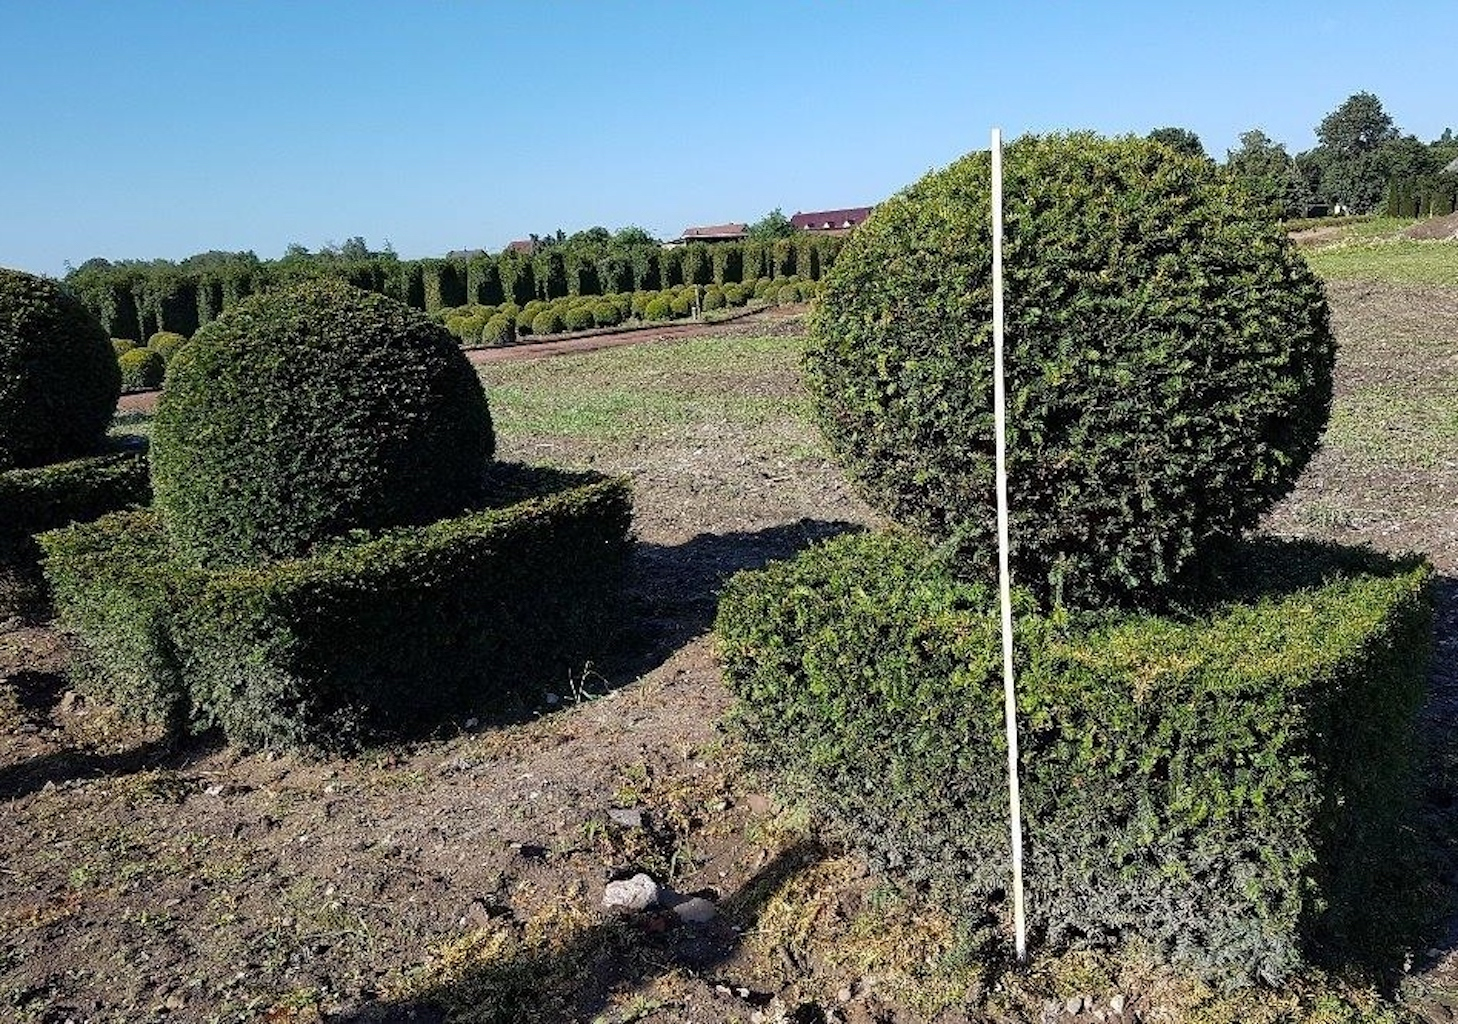 Taxus baccata topiary block with ball on top